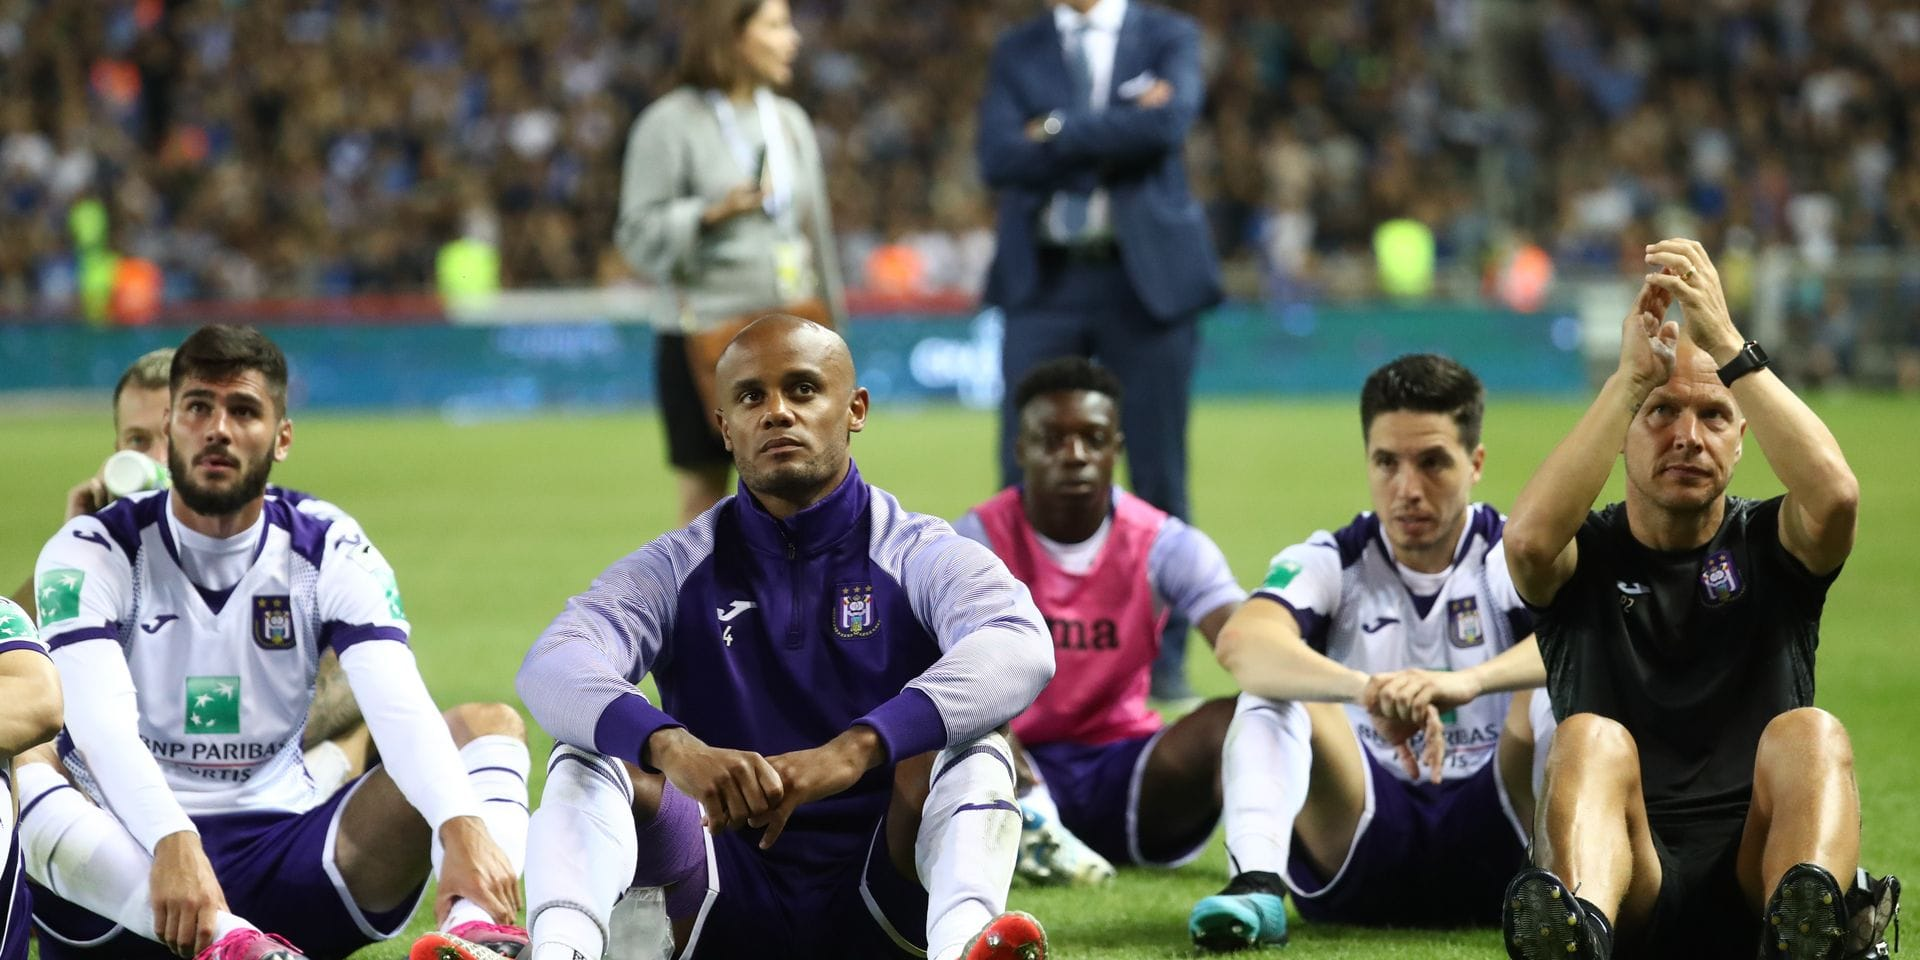 Anderlecht's Vincent Kompany looks dejected after a soccer match between KRC Genk and RSC Anderlecht, Friday 23 August 2019 in Genk, on the fifth day of the 'Jupiler Pro League' Belgian soccer championship season 2019-2020. BELGA PHOTO VIRGINIE LEFOUR